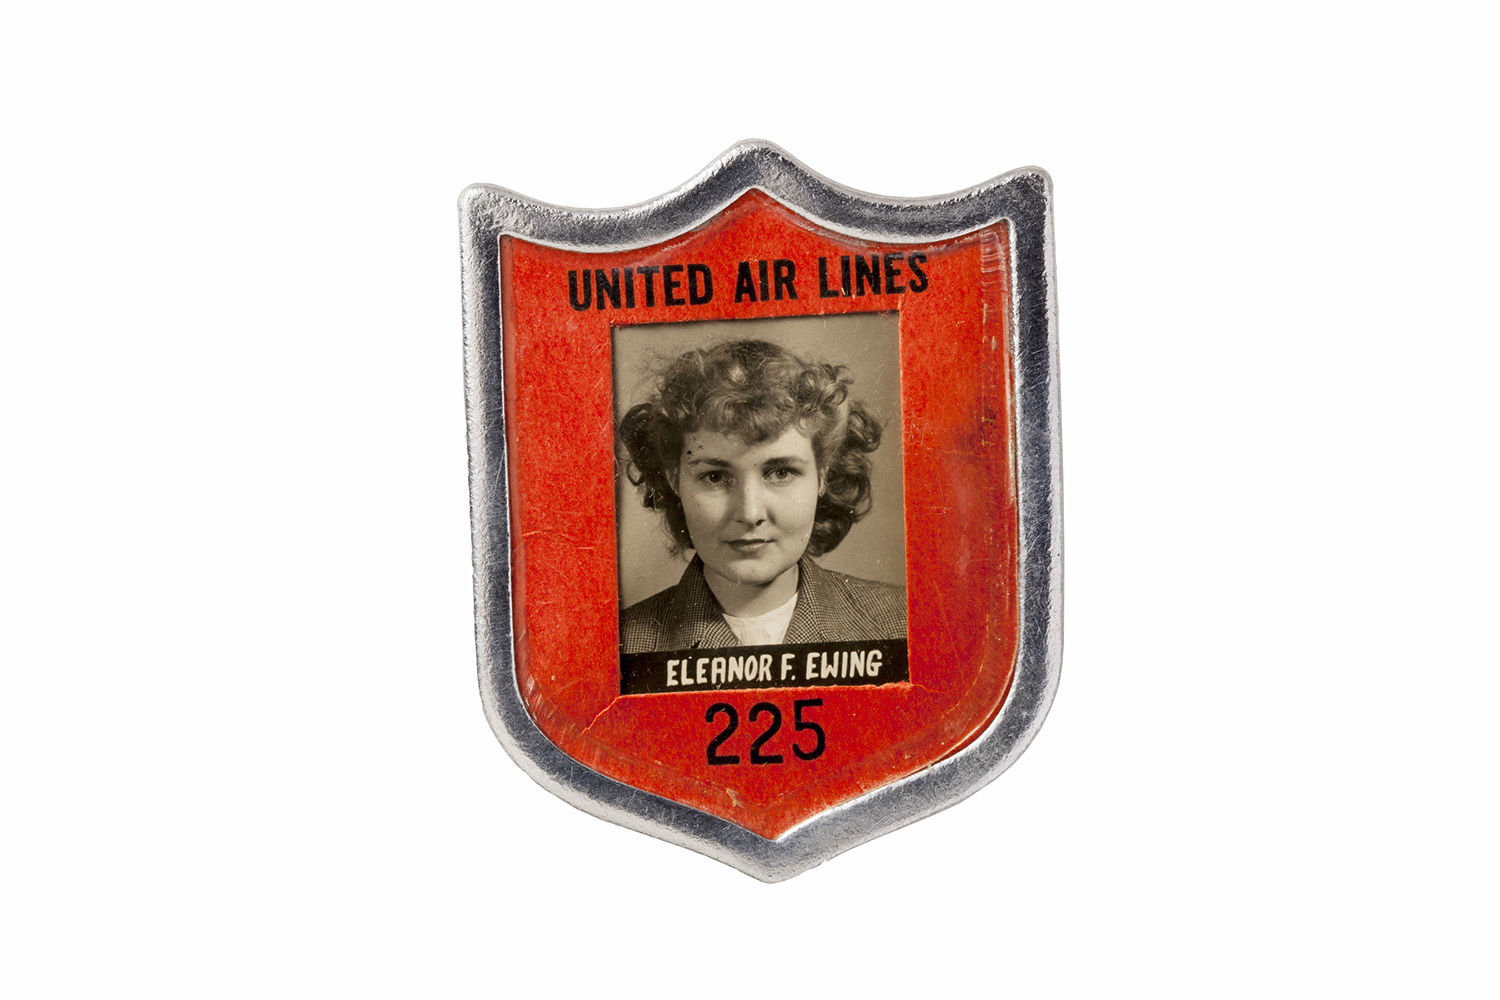 The ID badge of an employee at United Air Lines.